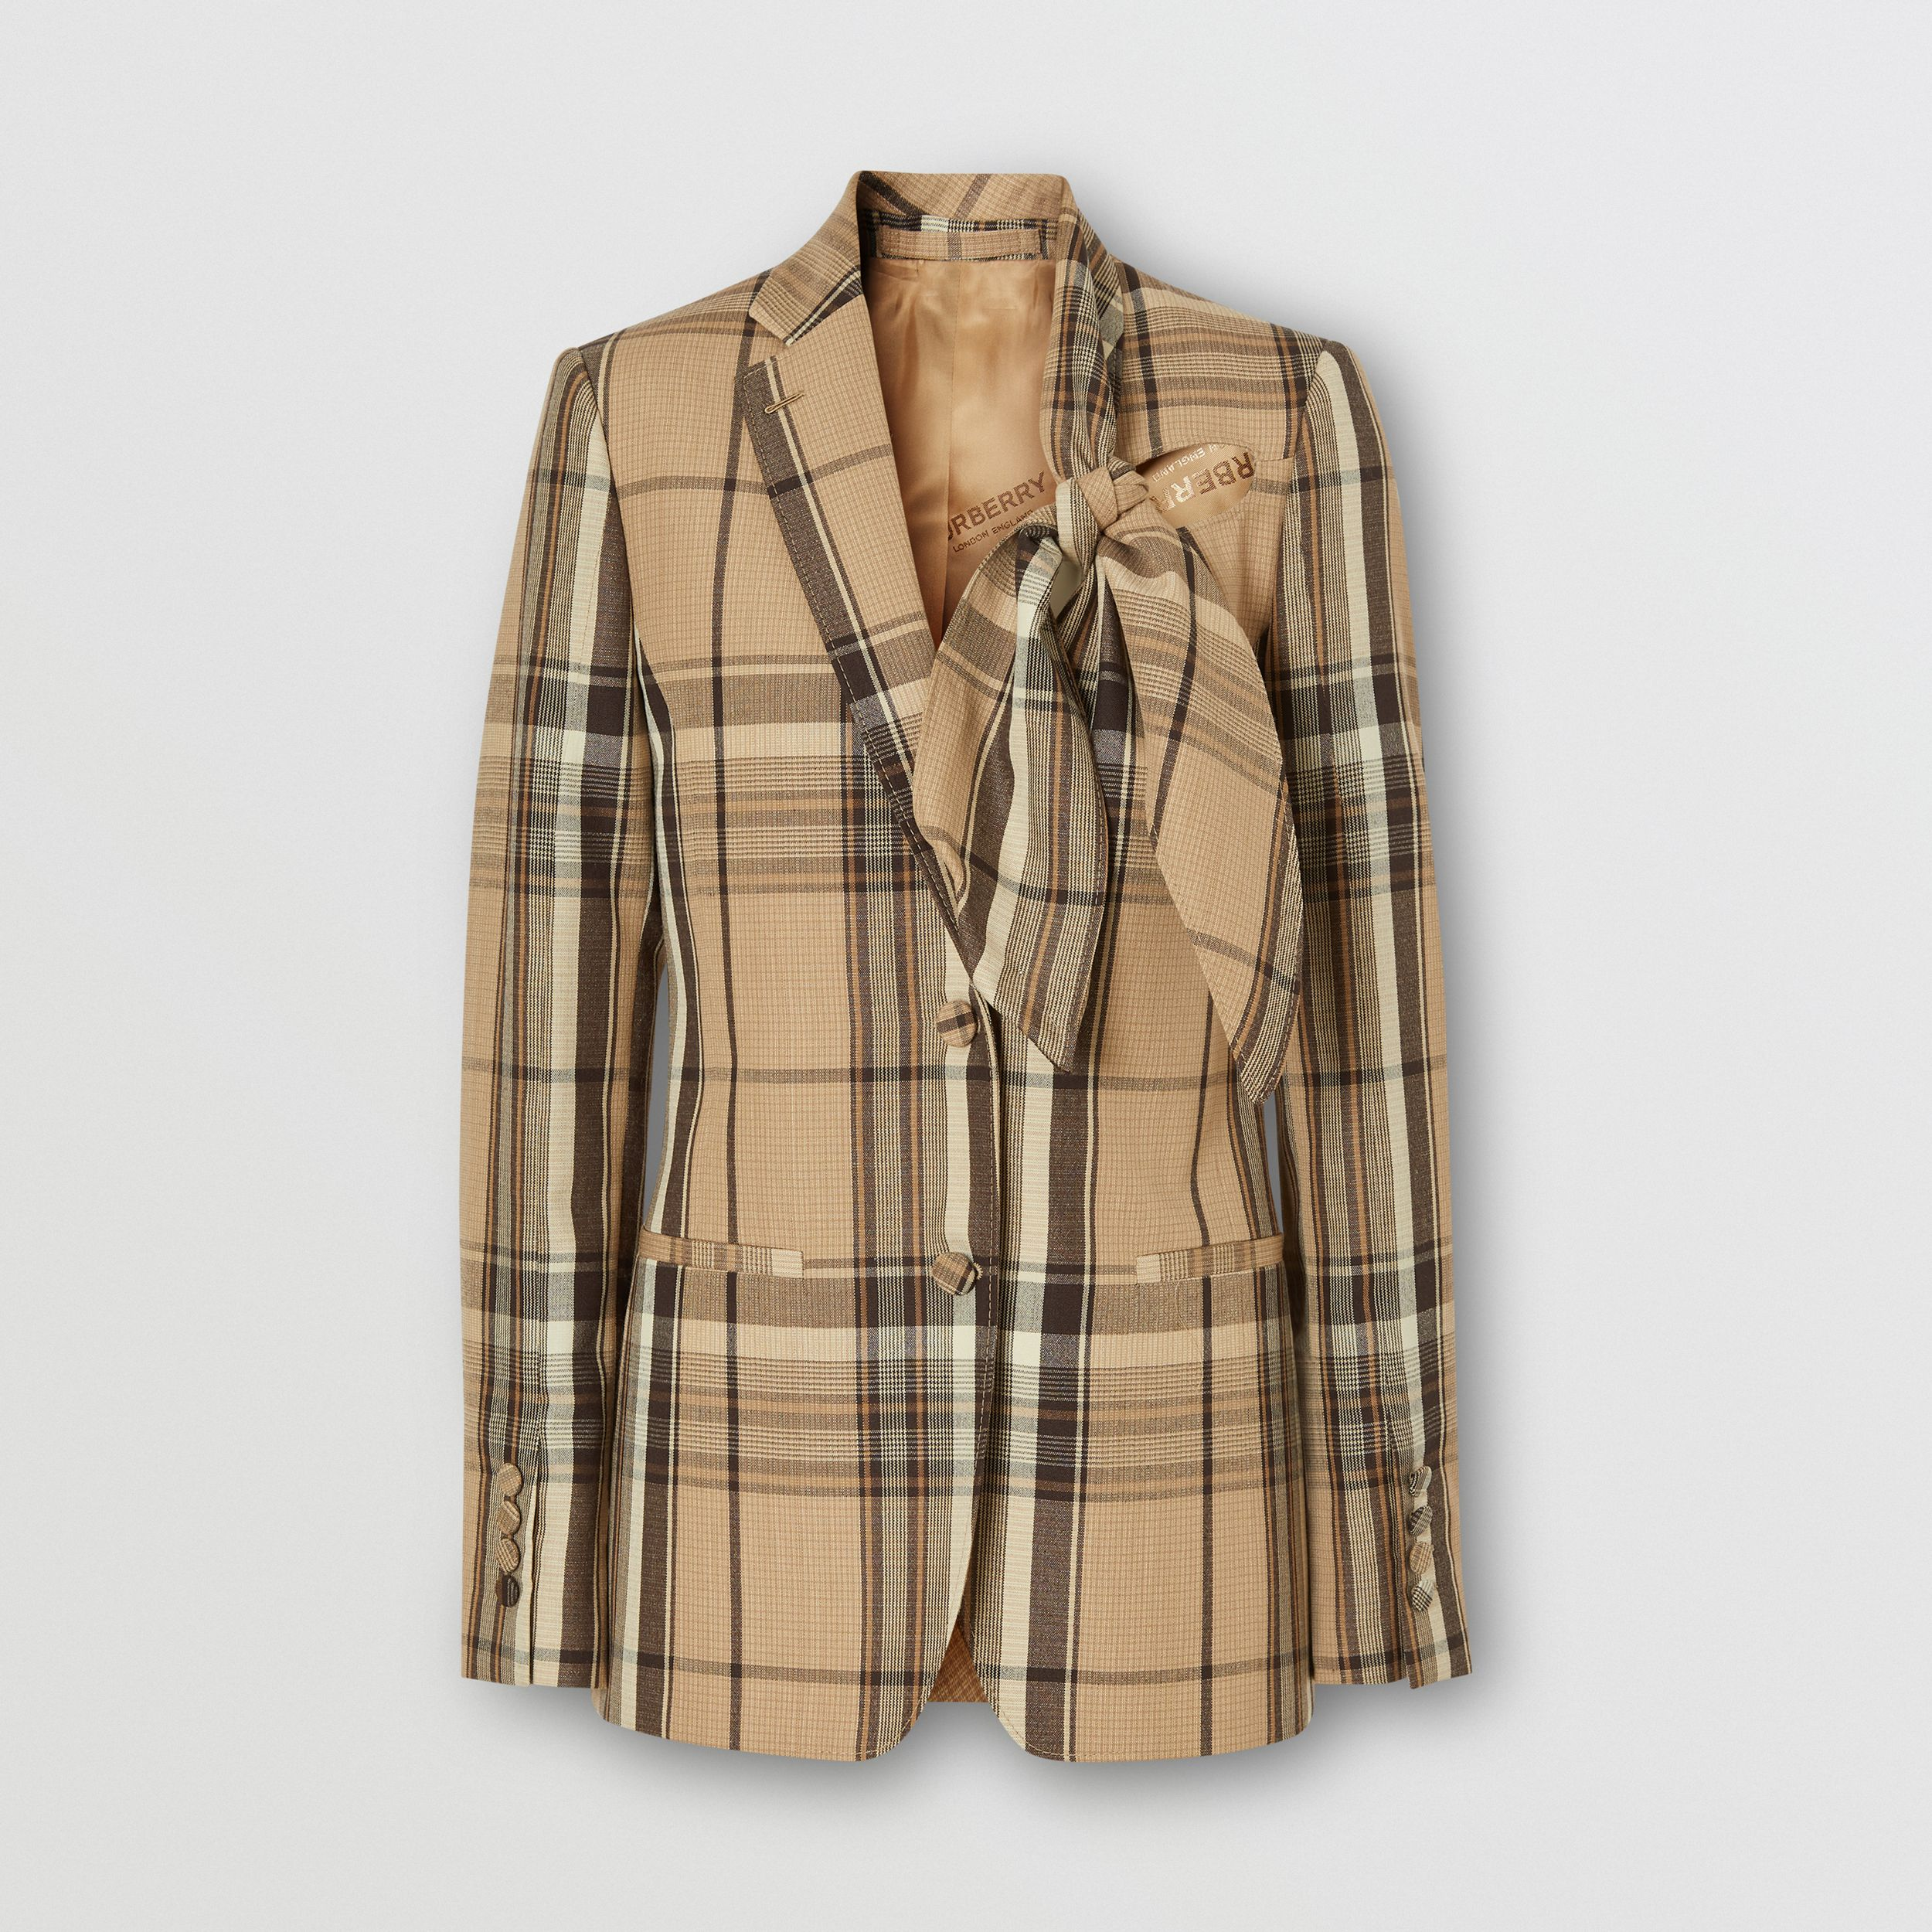 Knot Detail Check Wool Tailored Jacket - Women | Burberry - 4